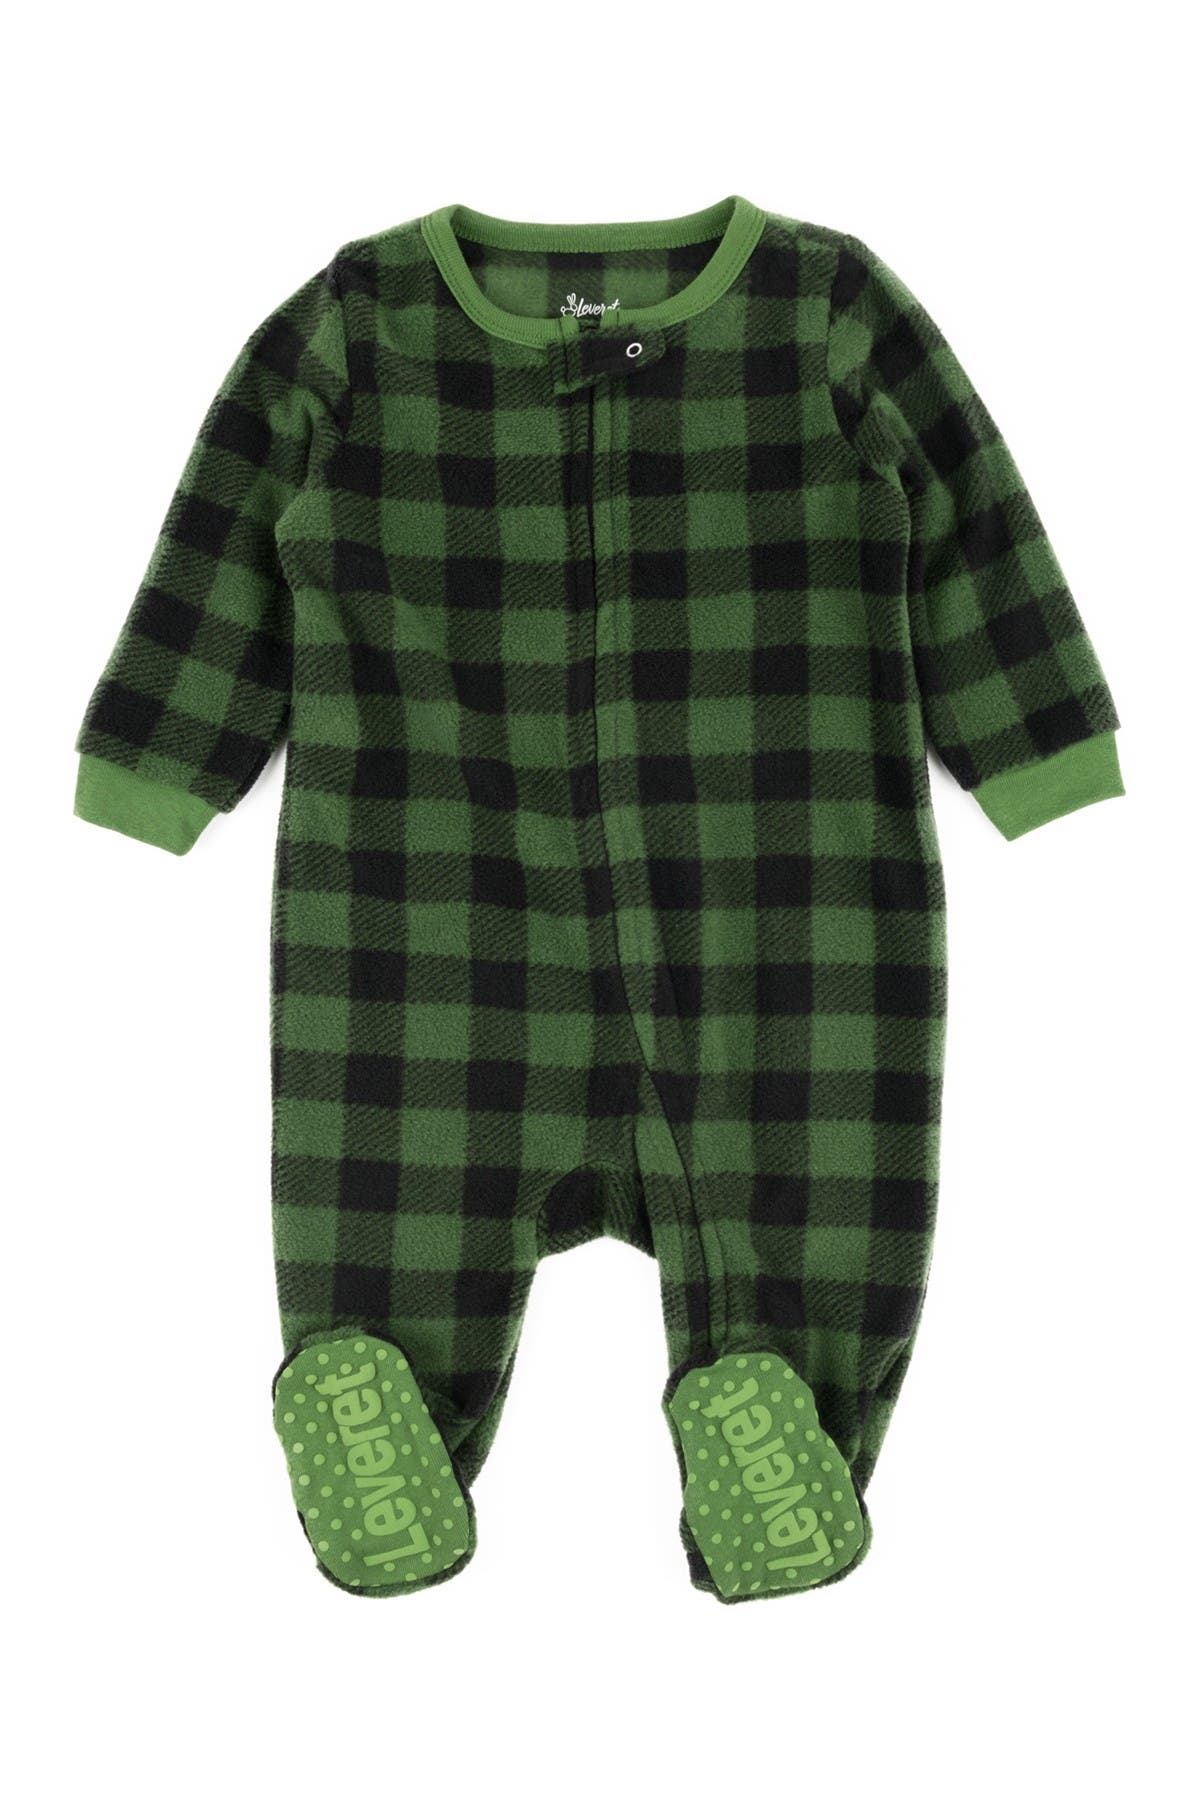 Image of Leveret Green and Black Plaid Footed Fleece Sleeper